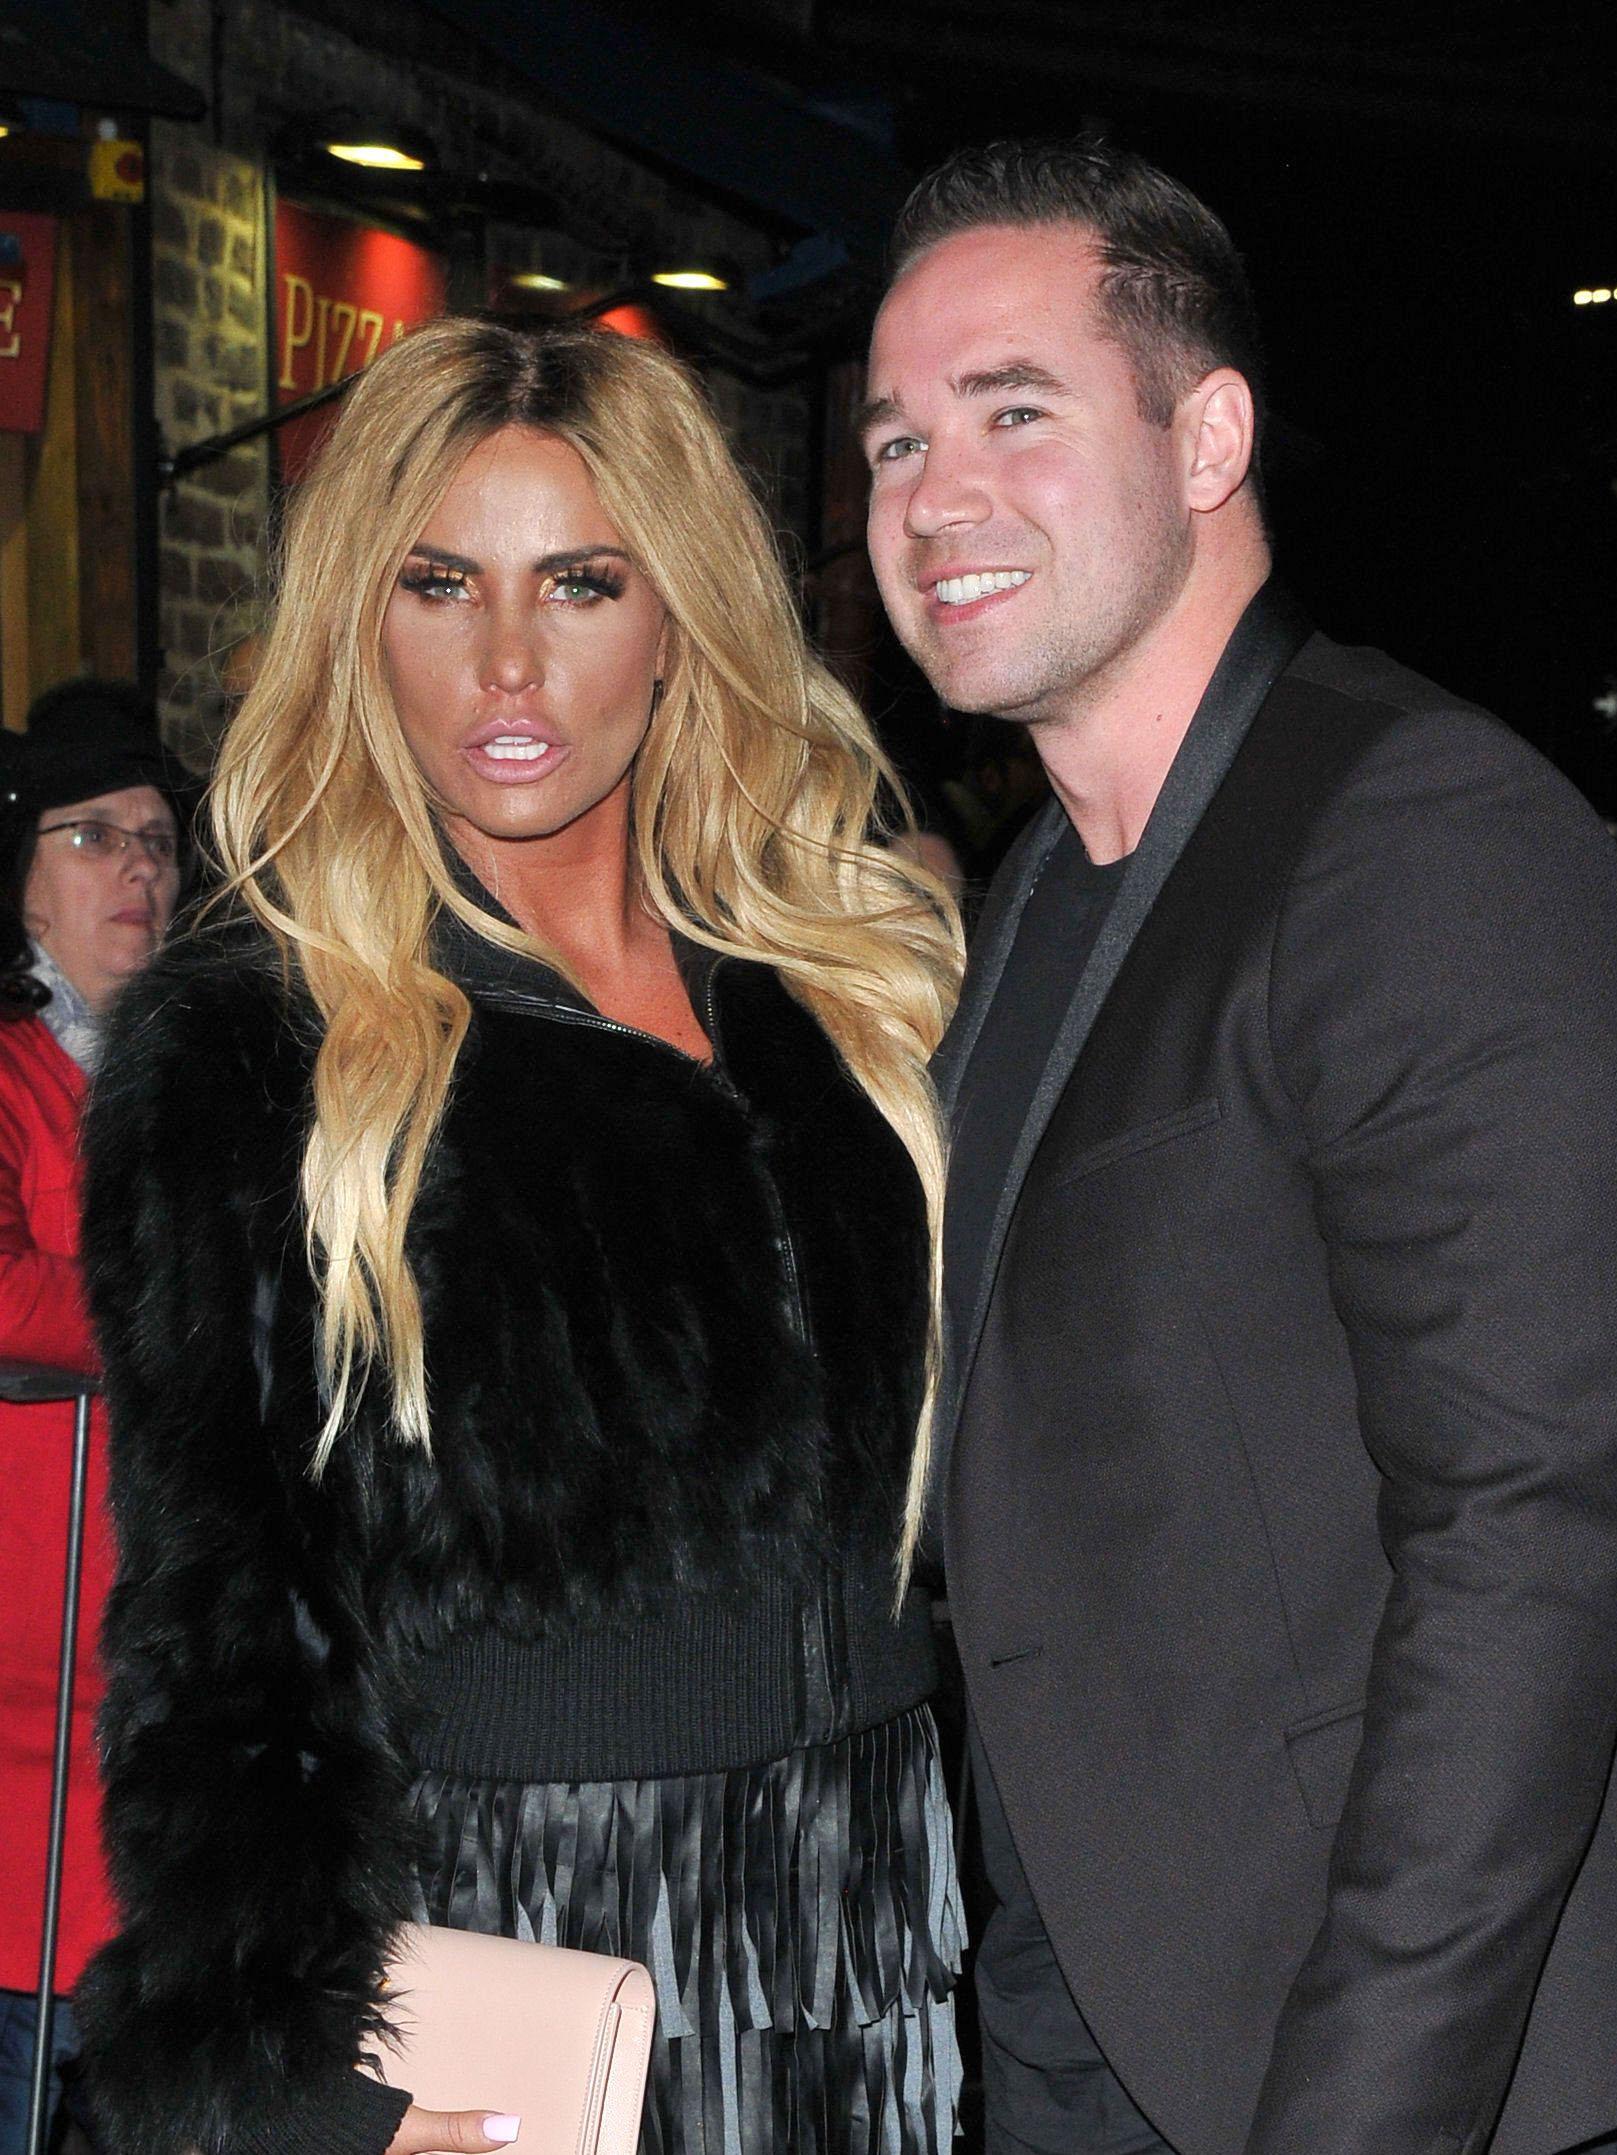 Katie Price - Agent, Manager, Publicist Contact Info